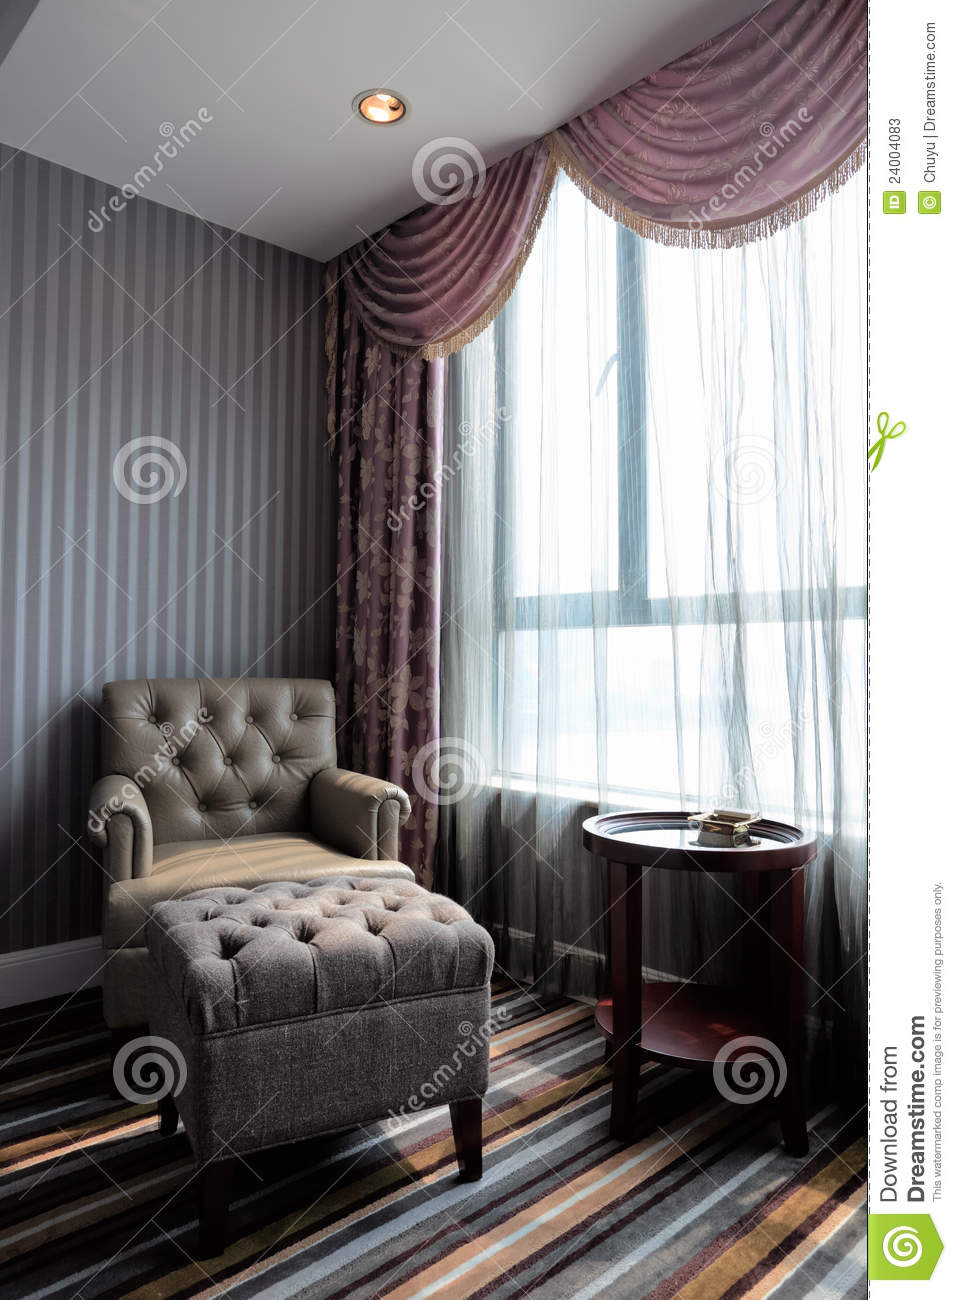 Comfortable room corner stock image for Comfy hotels resorts